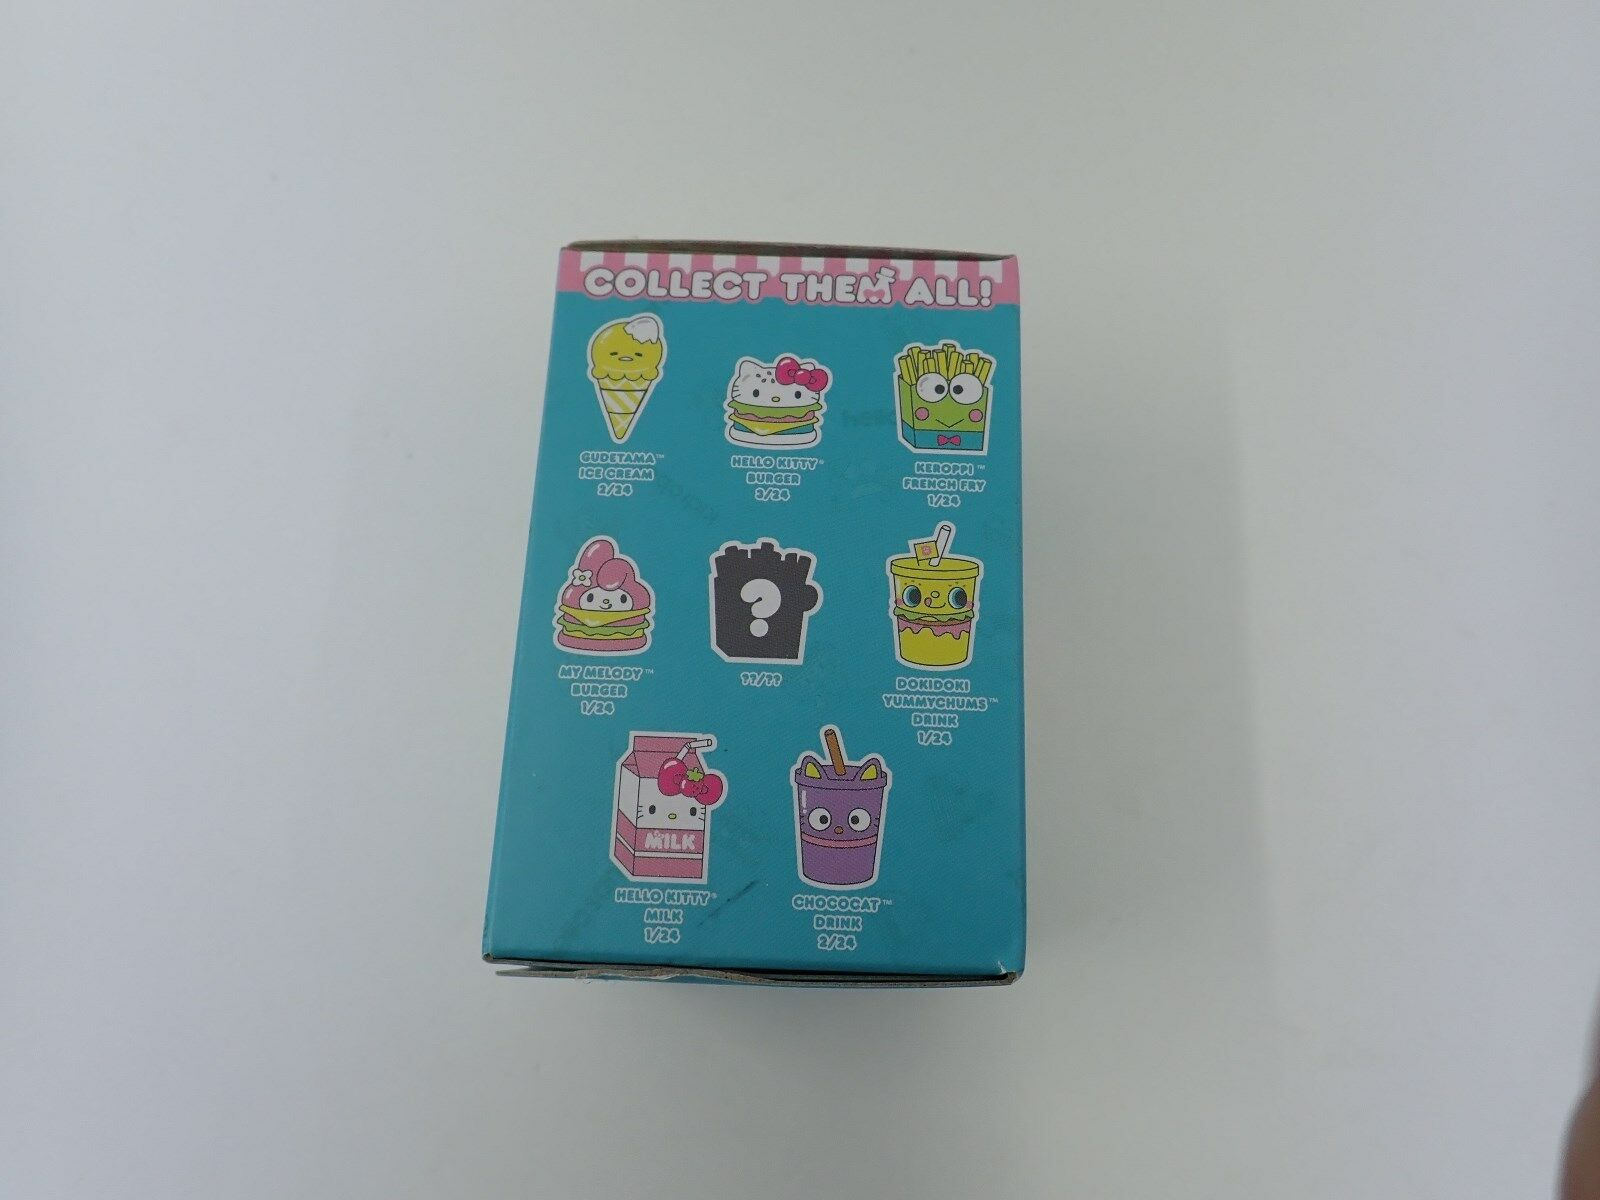 Kidrobot Hello Sanrio Sanrio Sanrio Mini Series - 15pcs Completed Set c6f927